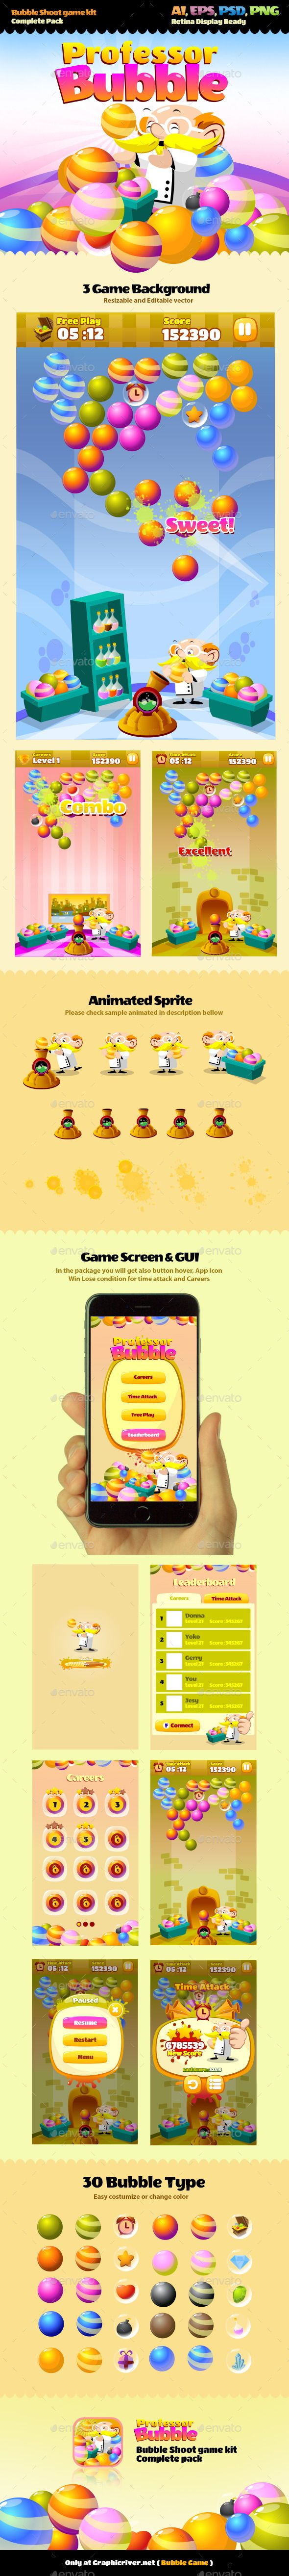 Bubble Game - Game #Kits #Game #Assets | Download http://graphicriver.net/item/bubble-game/10123614?ref=sinzo